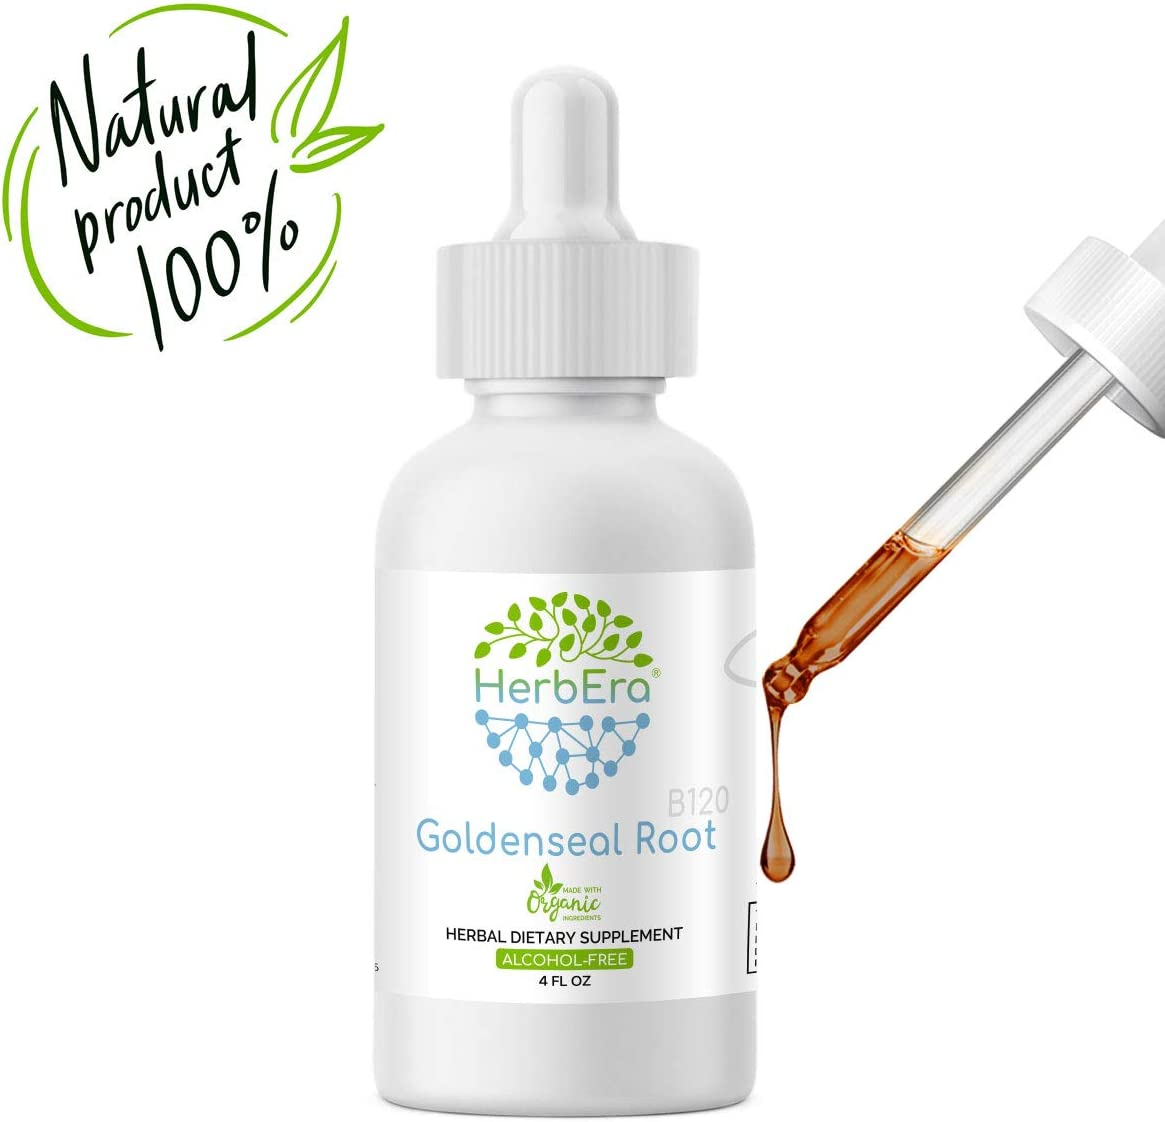 Goldenseal Root B120 Alcohol-Free Herbal Extract Tincture, Super-Concentrated Organic Goldenseal Hydrastis Canadensis 4 fl oz